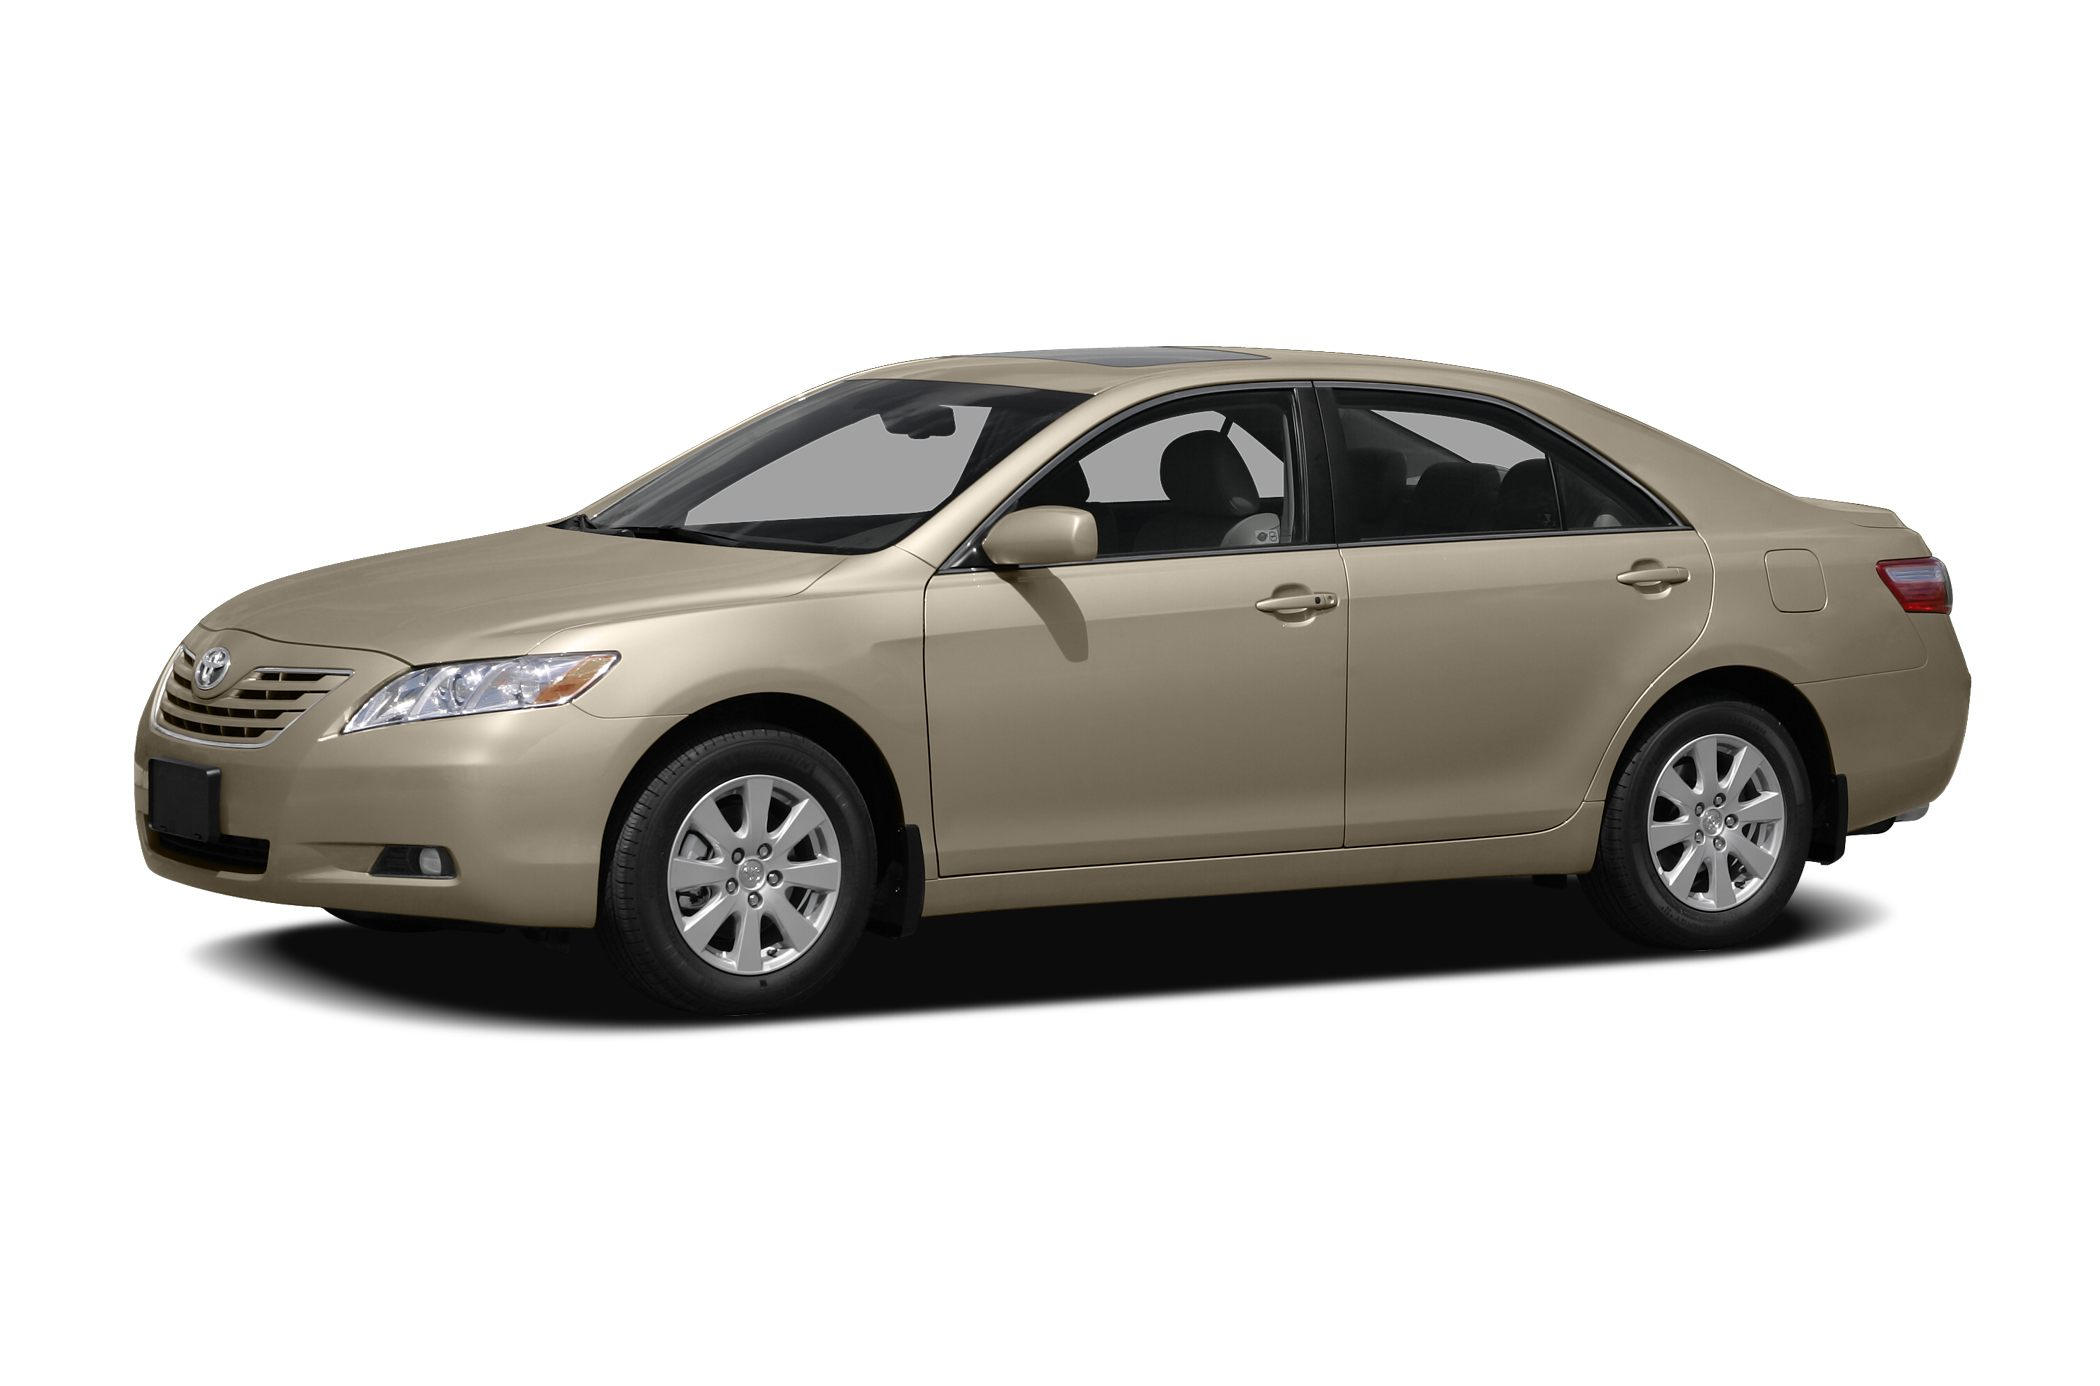 2008 Toyota Camry XLE Sedan for sale in Normal for $0 with 112,001 miles